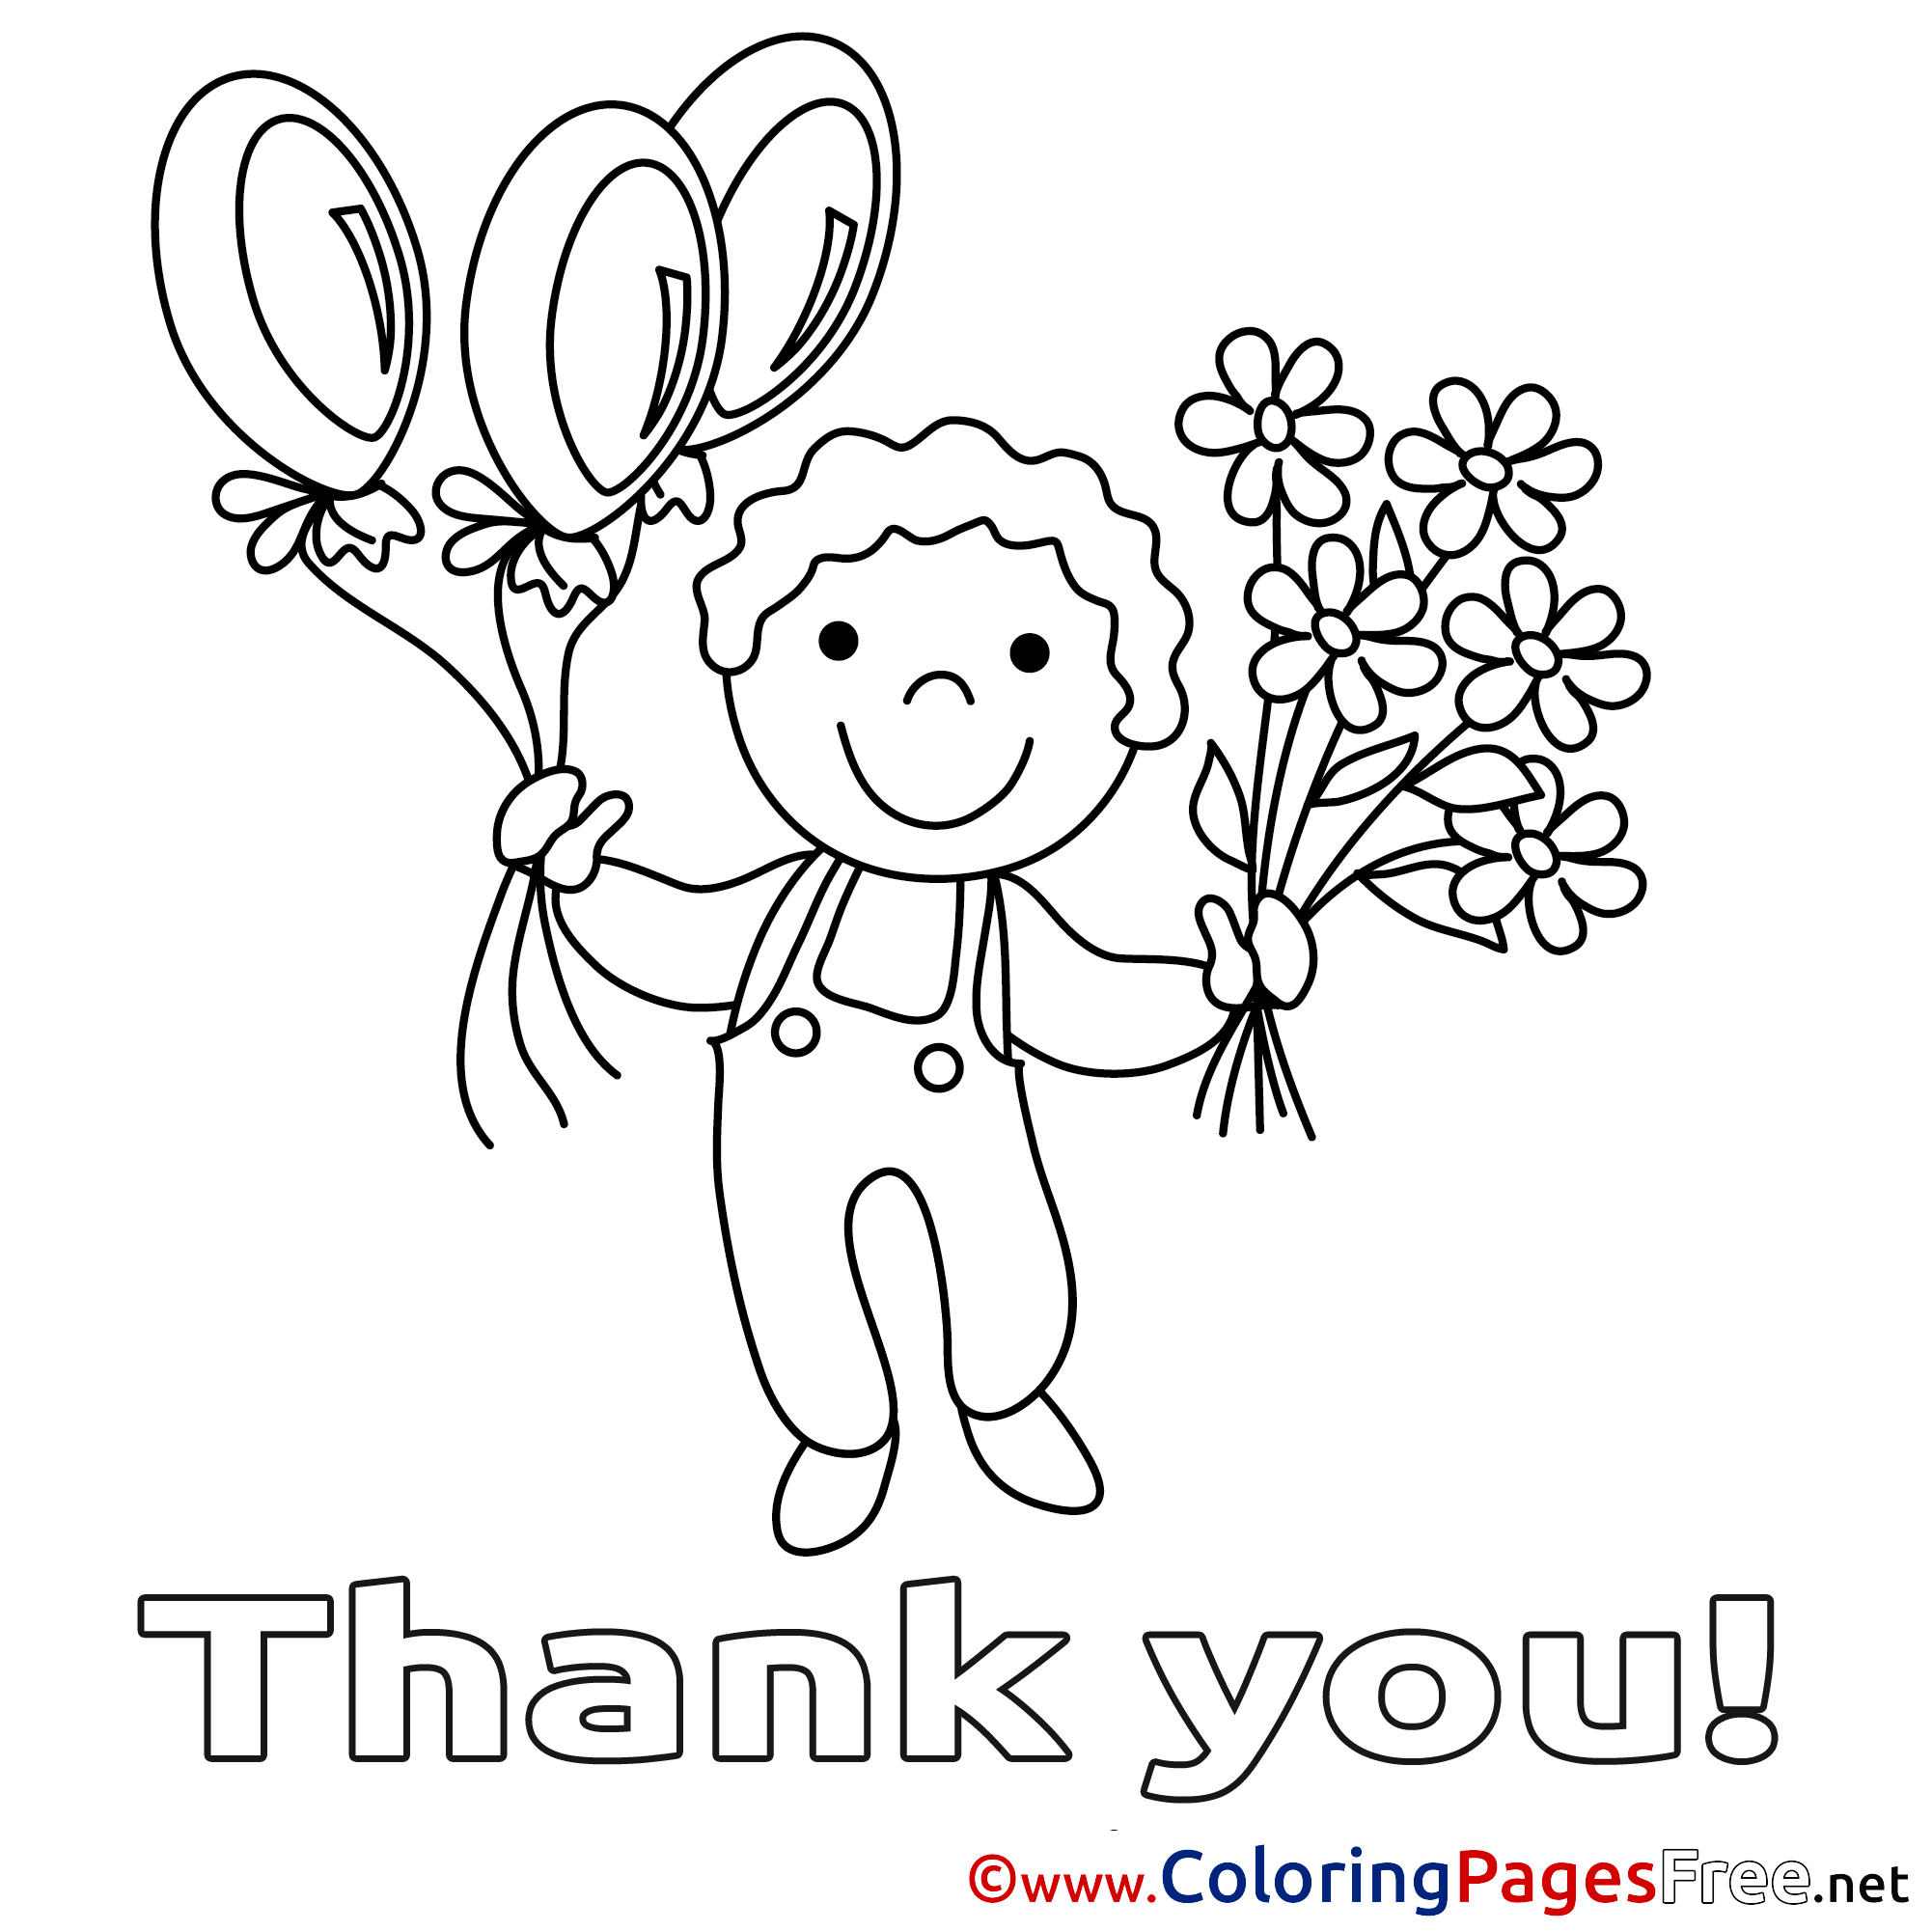 thank you coloring sheets thank you for your service coloring pages at getdrawings thank you coloring sheets